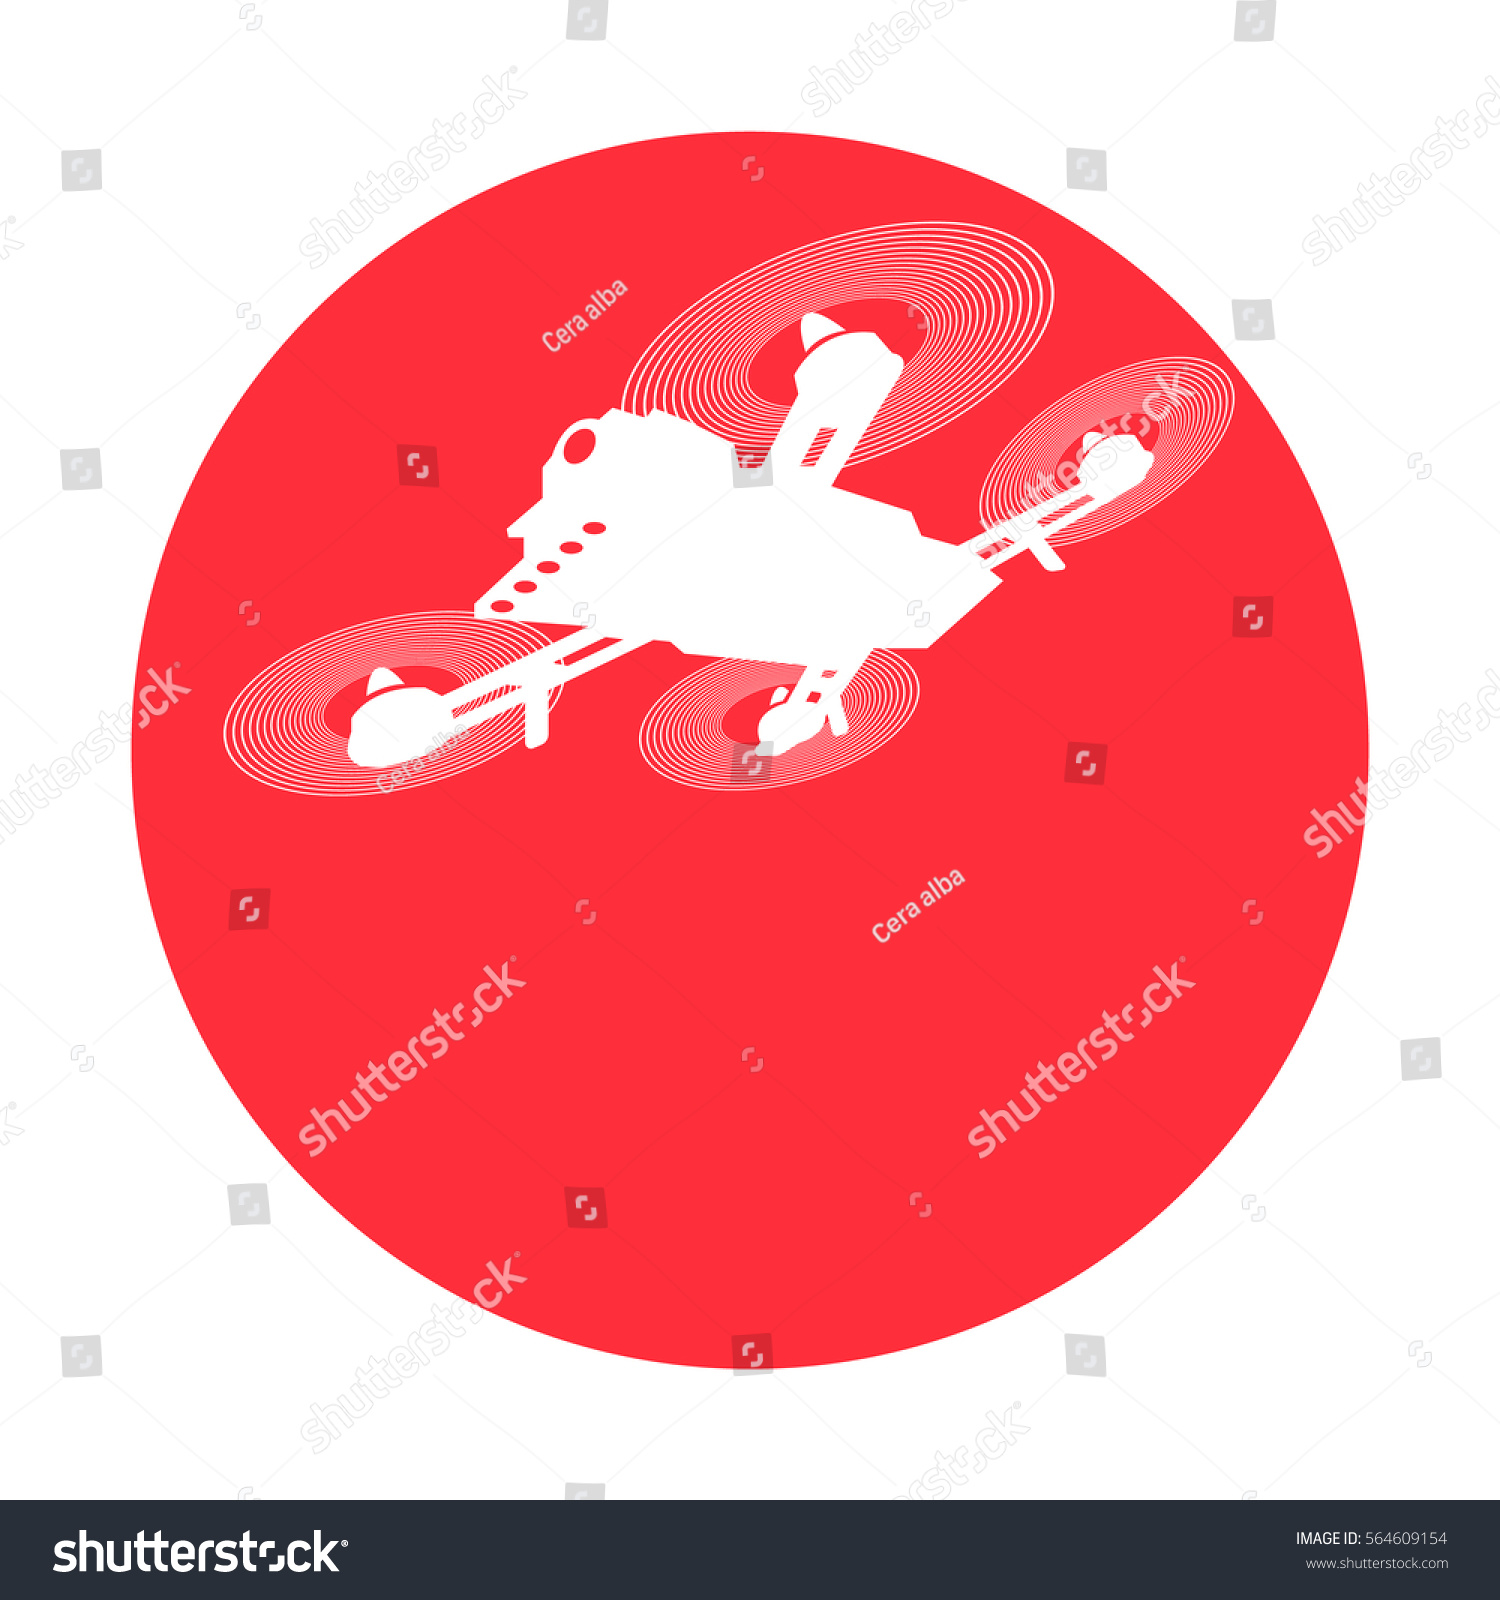 Drone racing logo red and white isolated background